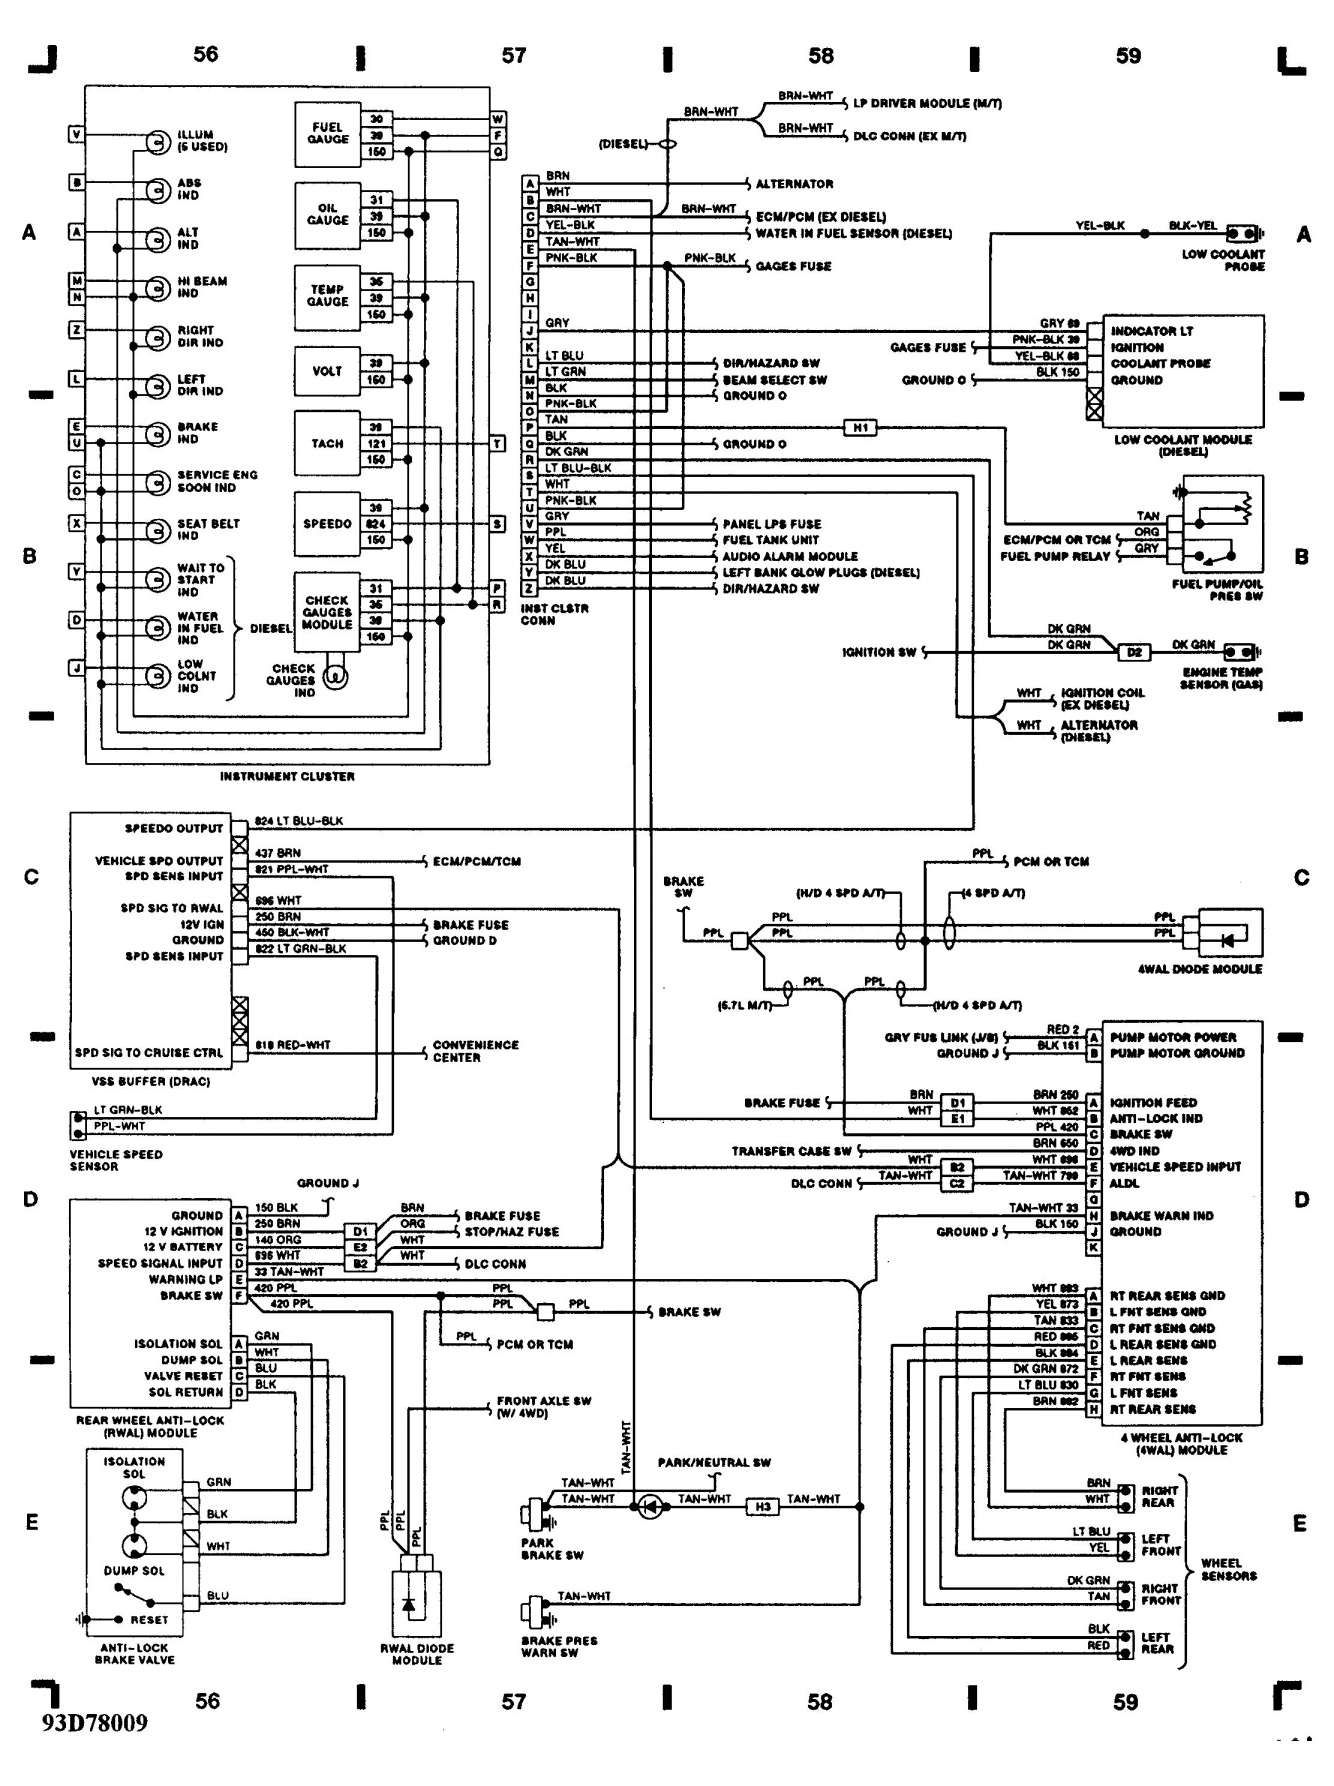 Chevy 305 Engine Wiring Diagram and Engine Wiring Harness Diagram - Getting  Started Of in 2020 | Toyota corolla, Chevy trucks, Chevy